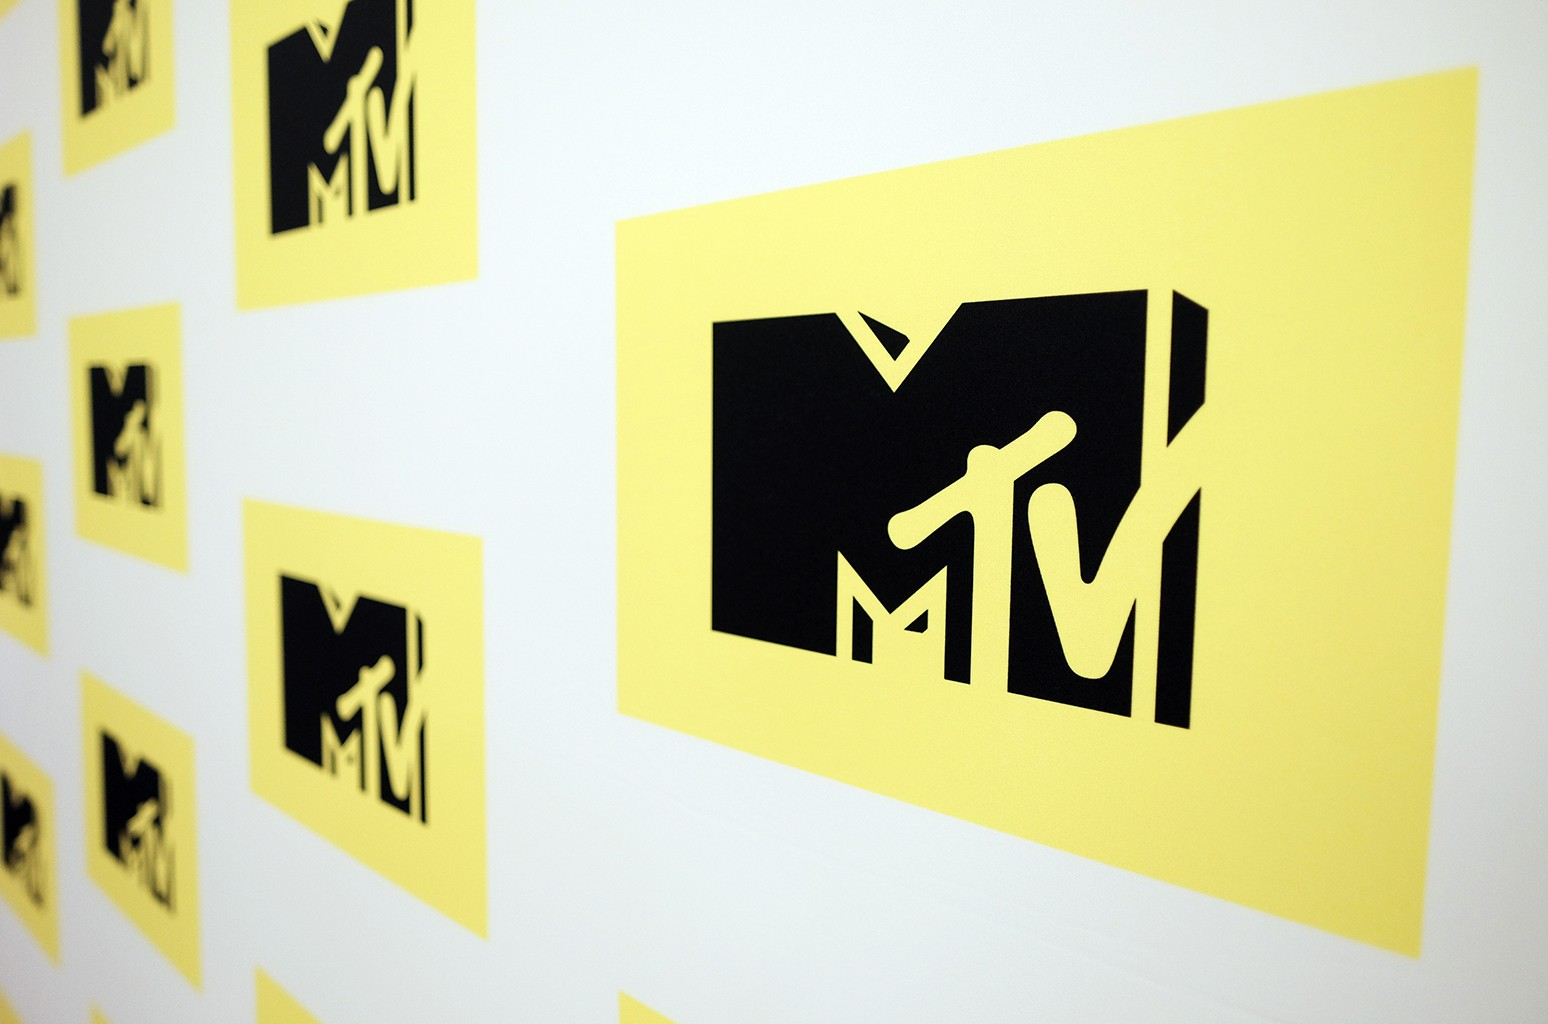 The MTV logo in 2016